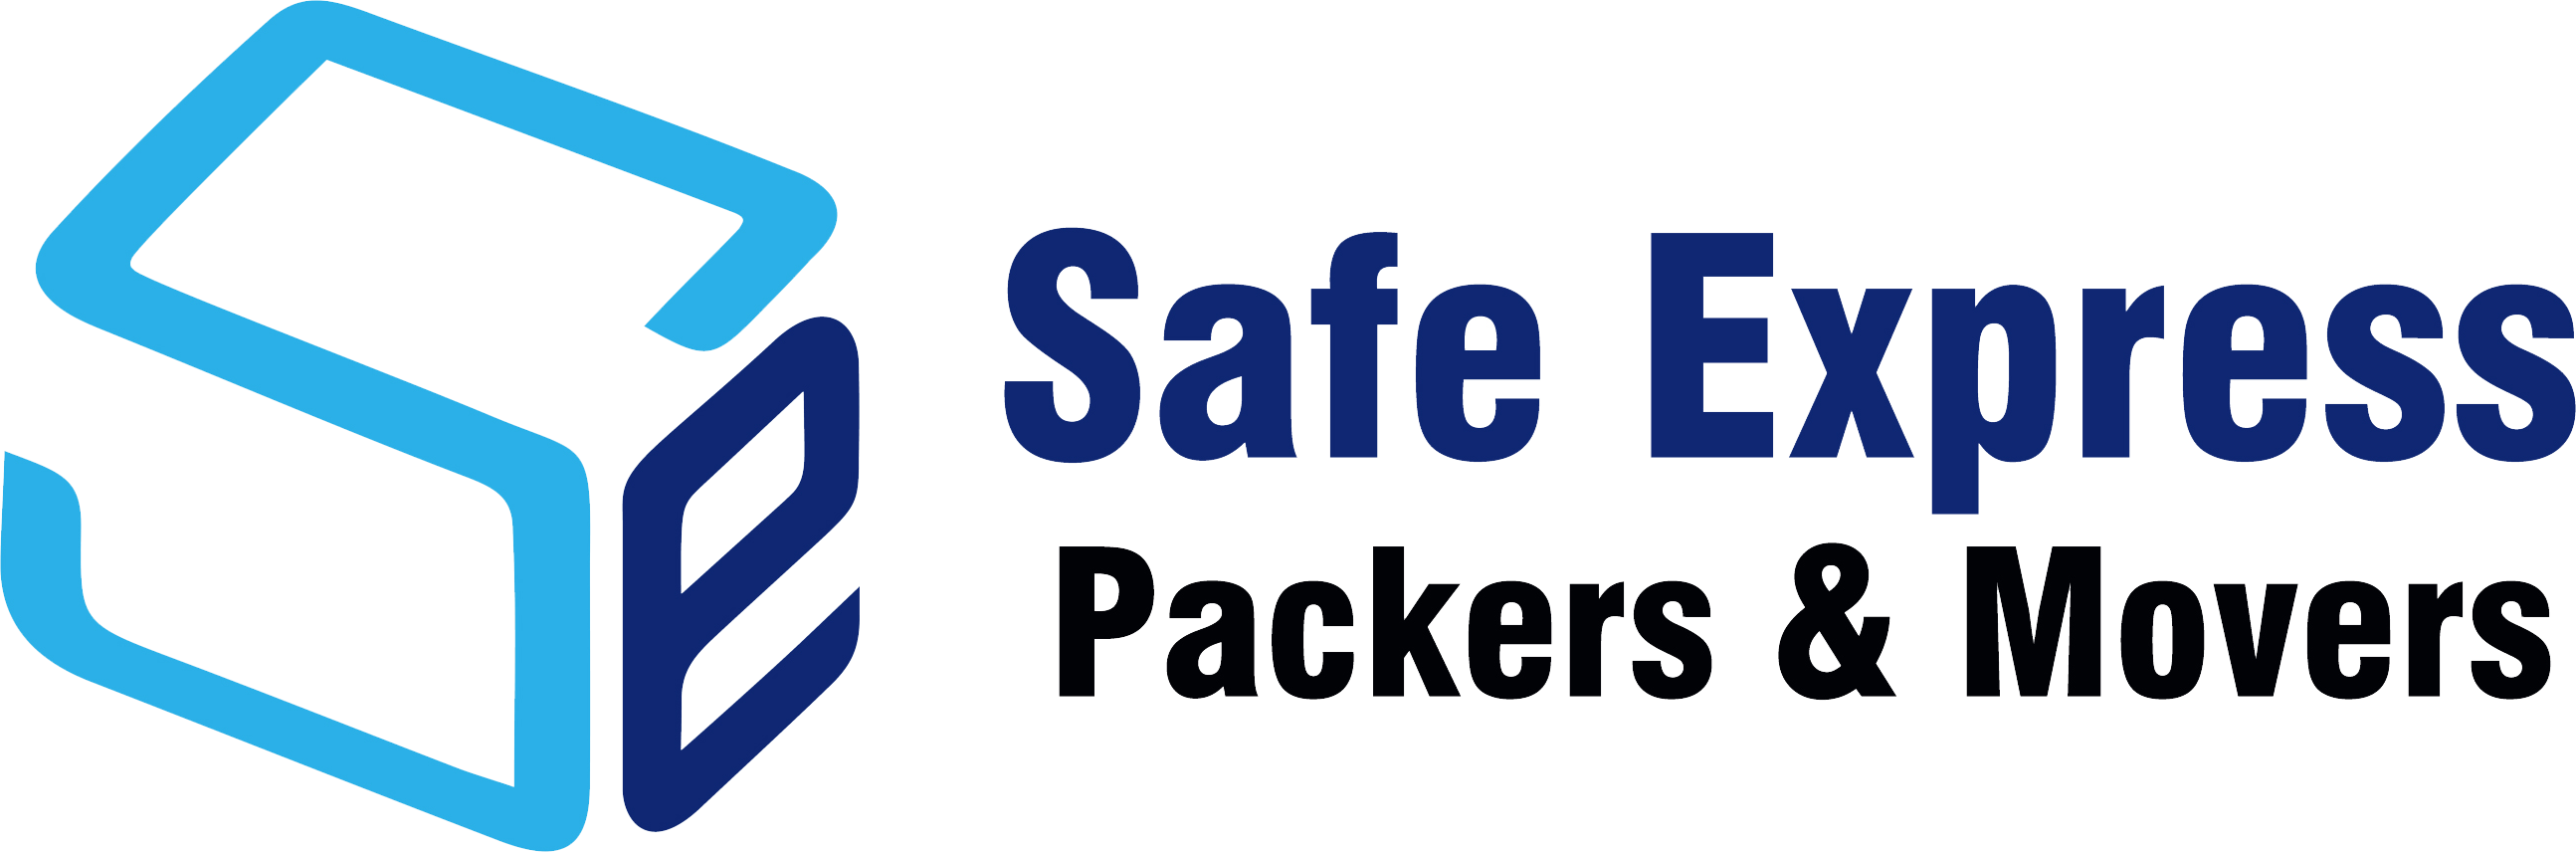 Safe Express Movers & Packers Image